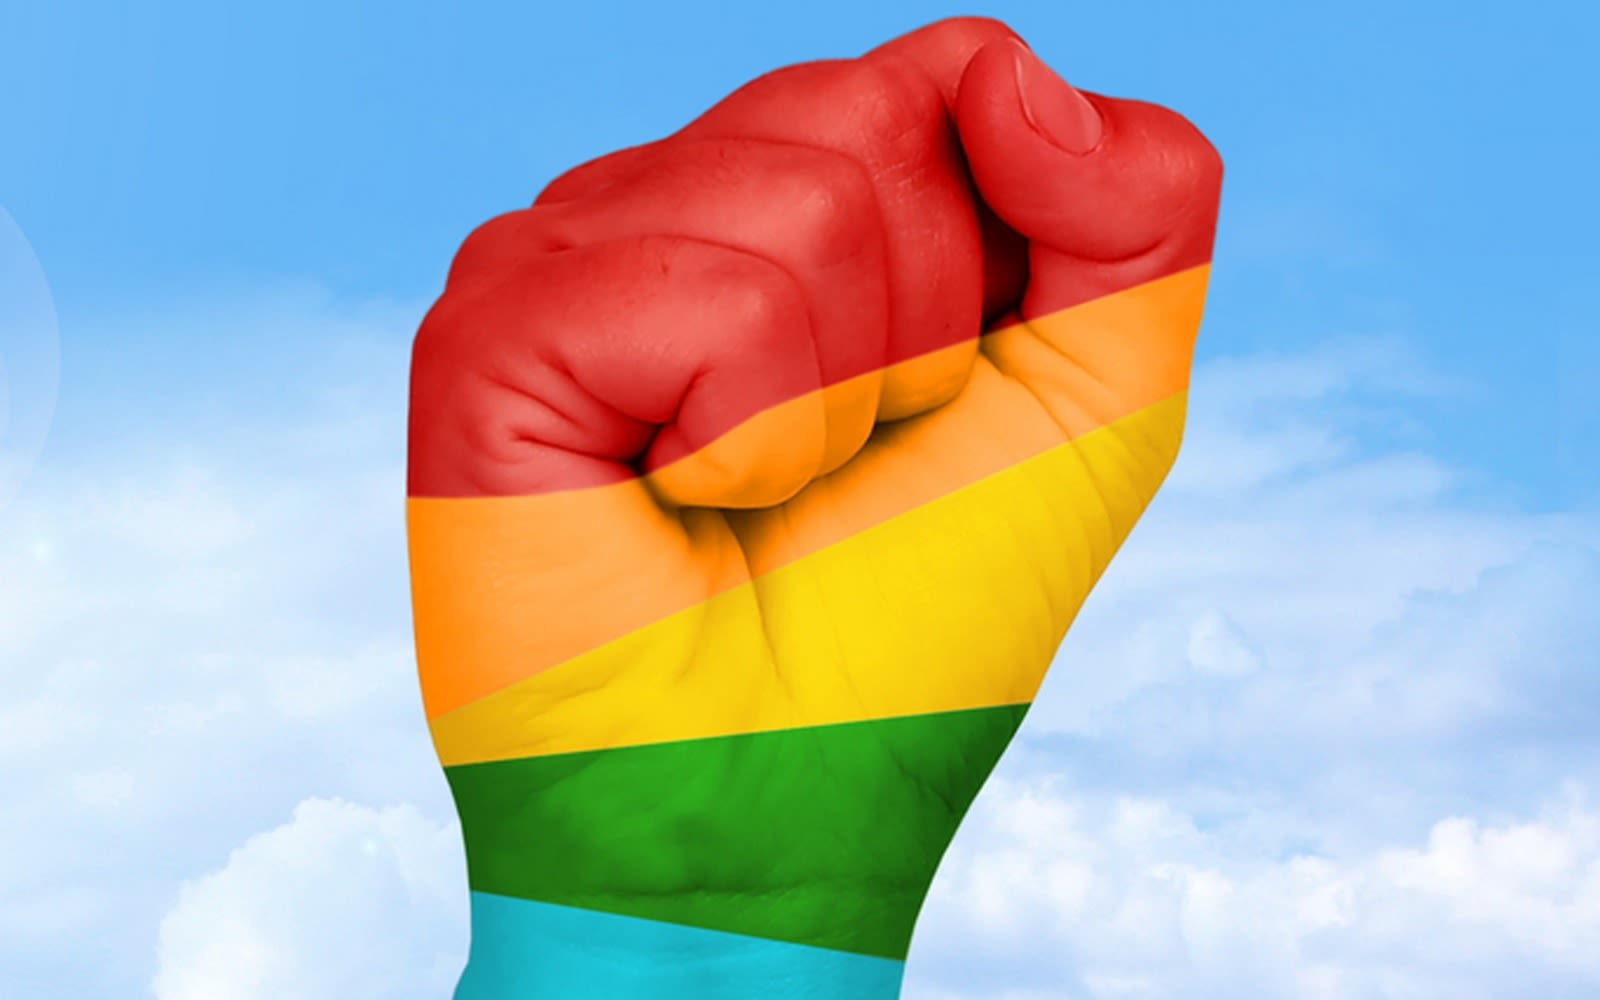 A clenched fist raised up with five colours of the rainbow in stripes across it - red, orange, yellow, green, blue